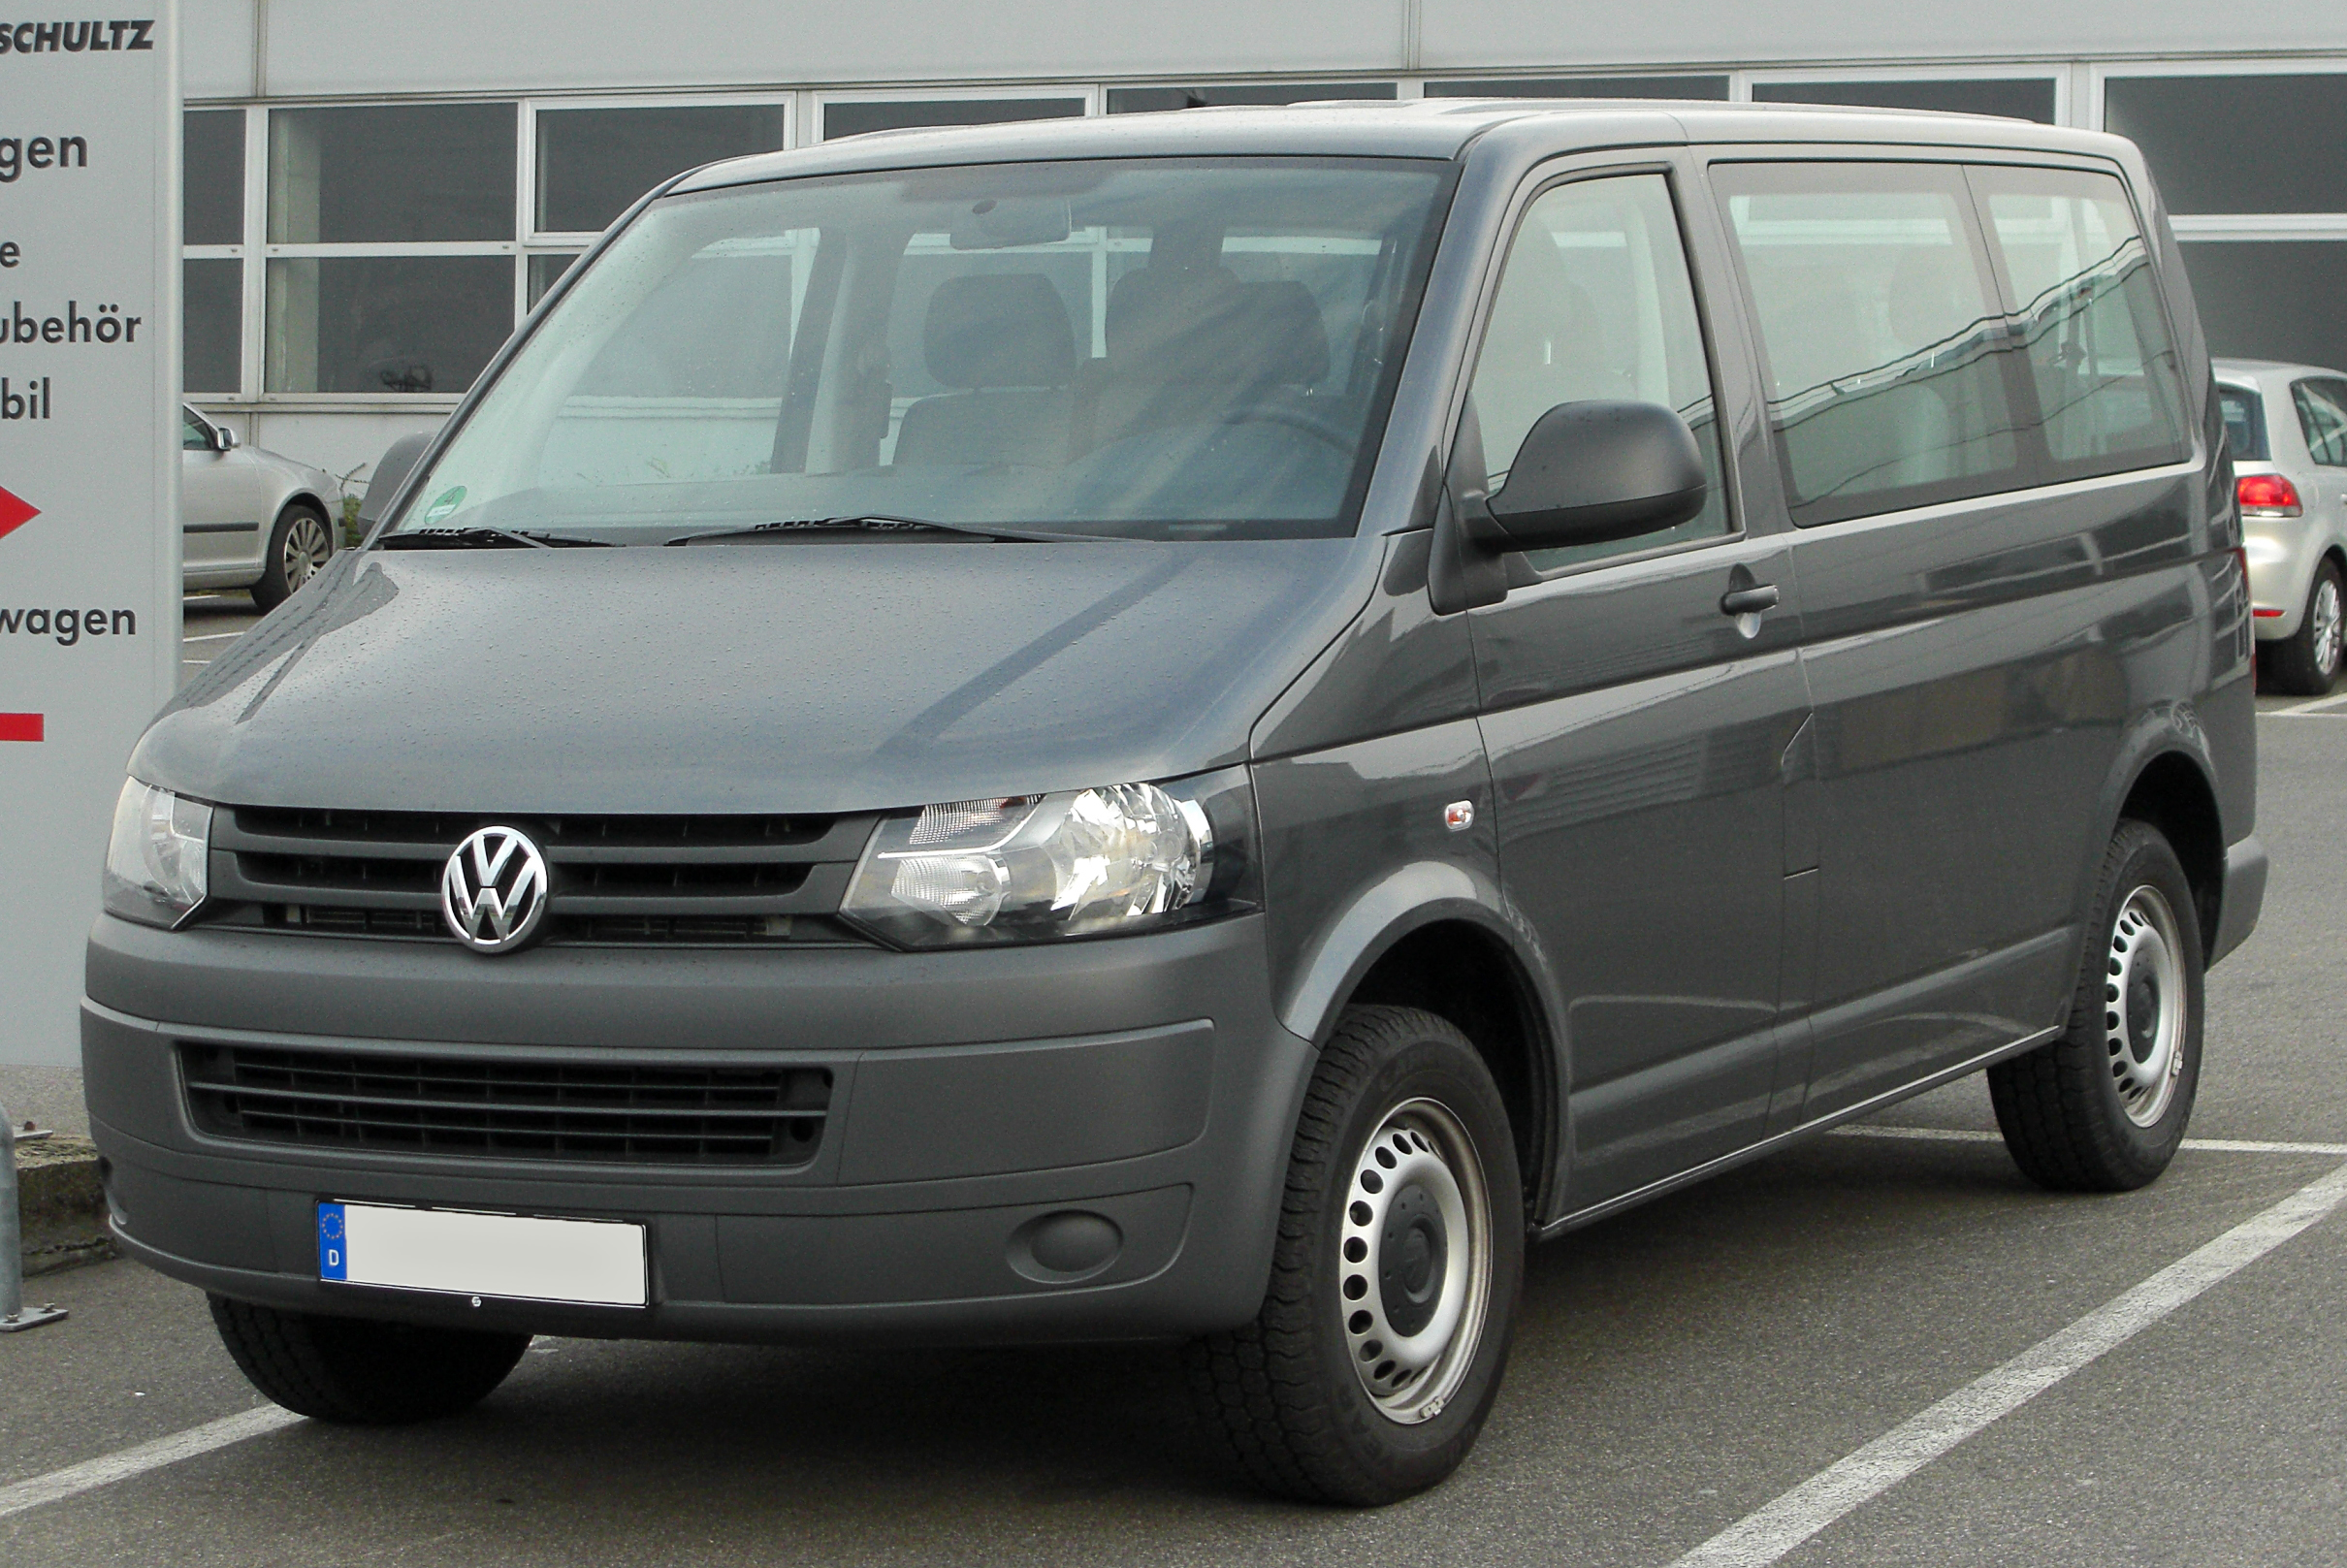 Vw Transporter T5 File Vw Transporter Tdi T5 Facelift Front 20100902 Jpg